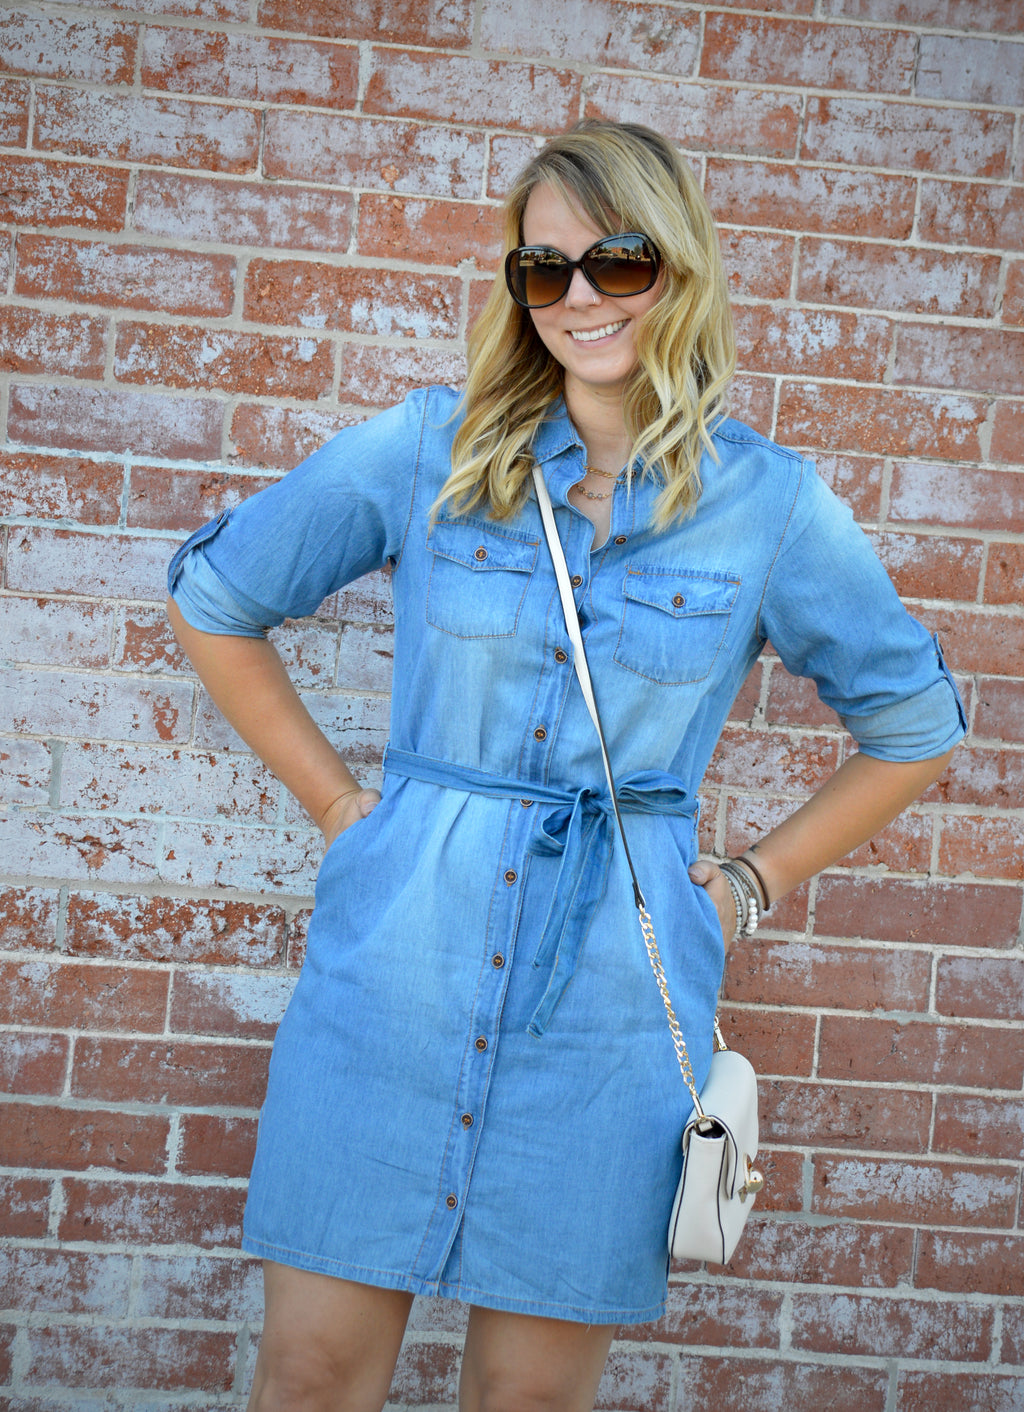 Bria Bella & Co - Belted Denim Shirt Dress